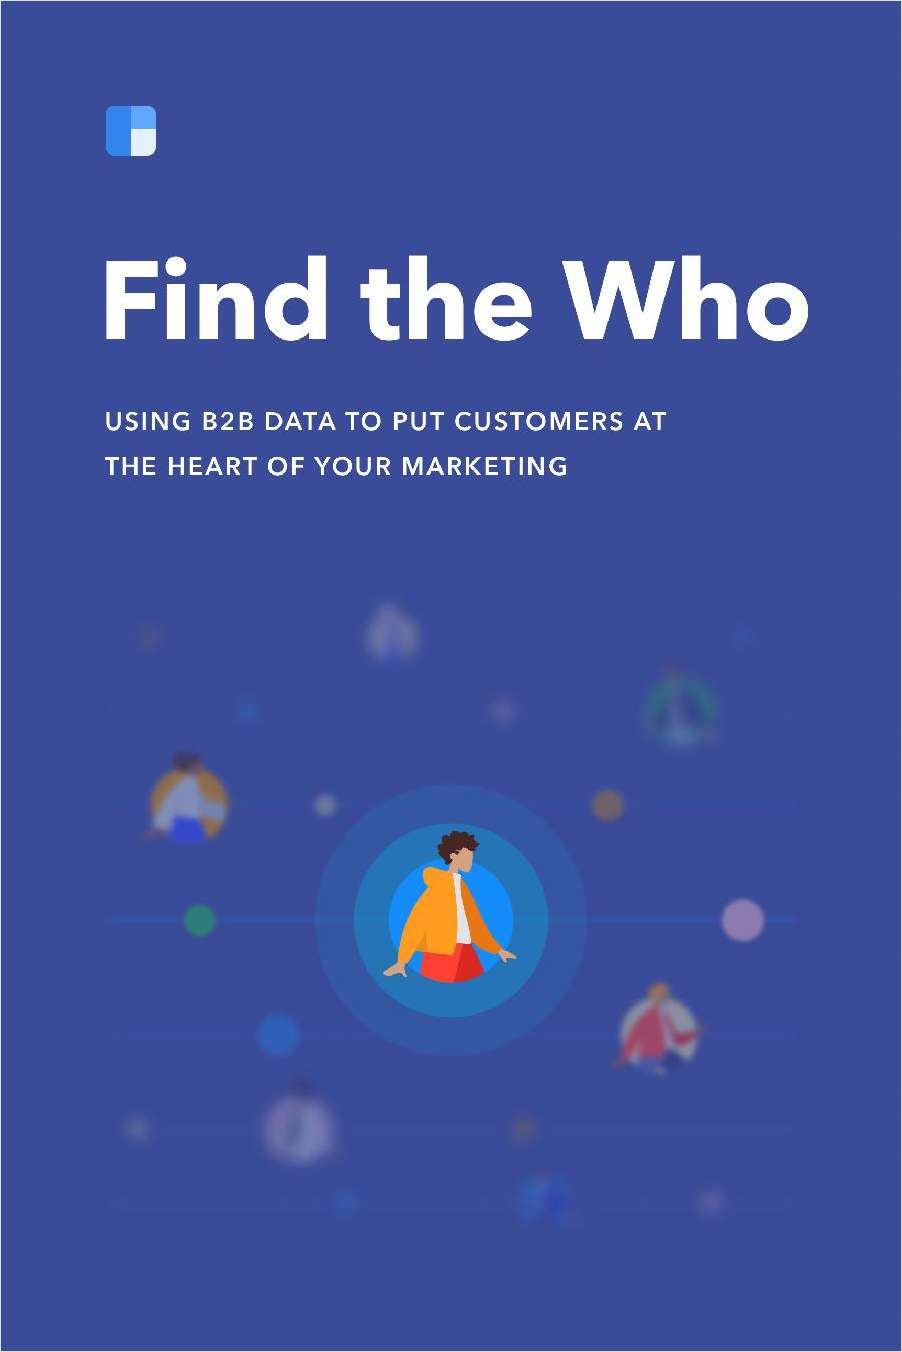 Find the Who: Using B2B Data to Put Customers at the Heart of Your Marketing